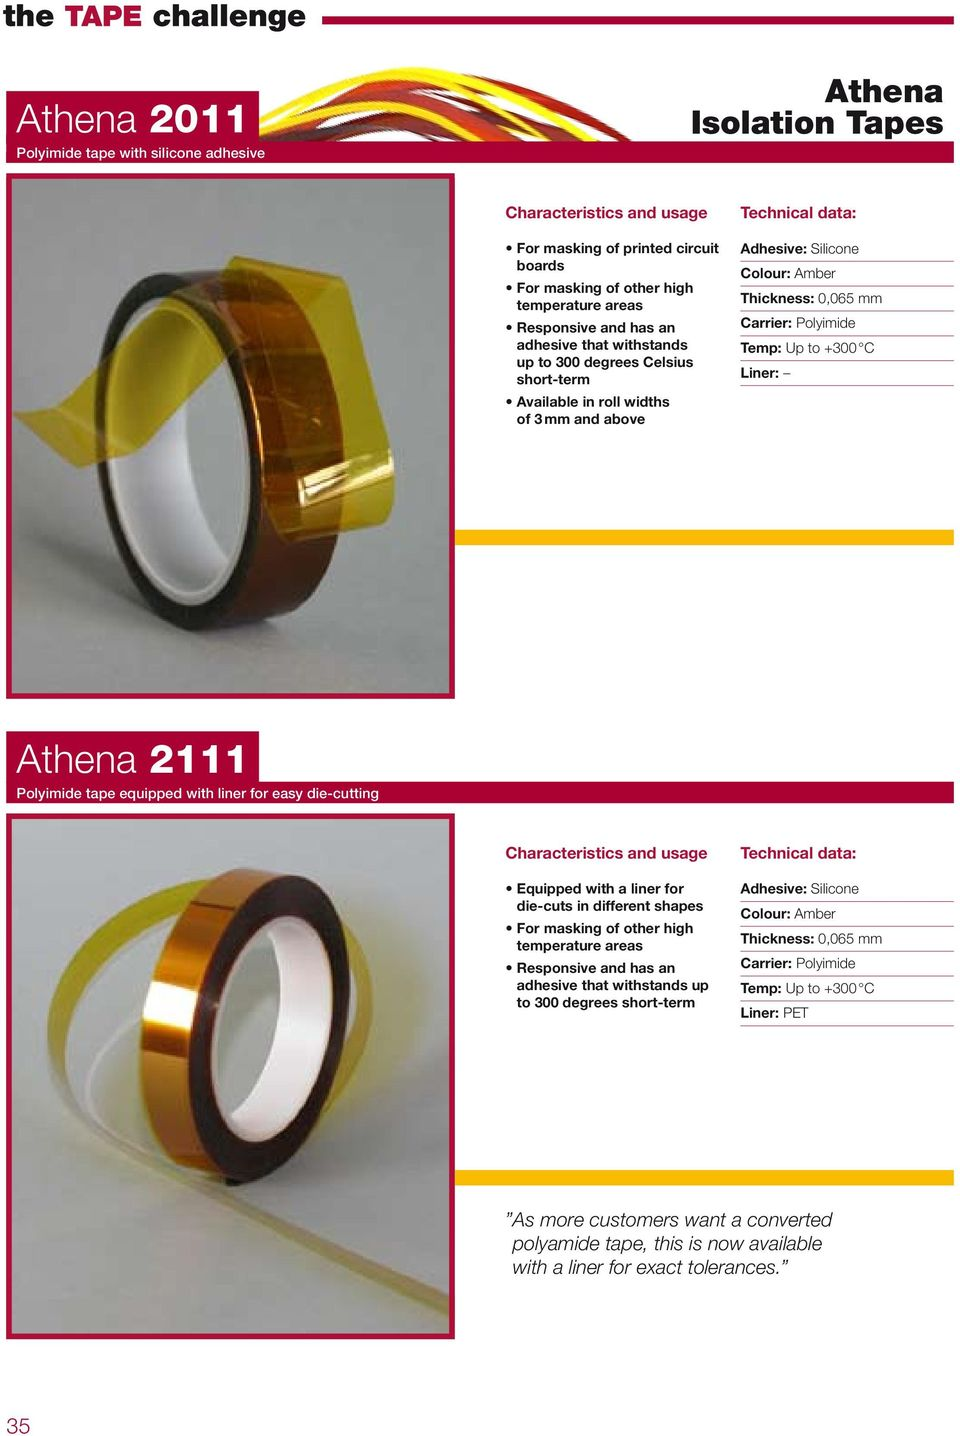 Polyimide tape equipped with liner for easy die-cutting Equipped with a liner for die-cuts in different shapes For masking of other high temperature areas Responsive and has an adhesive that